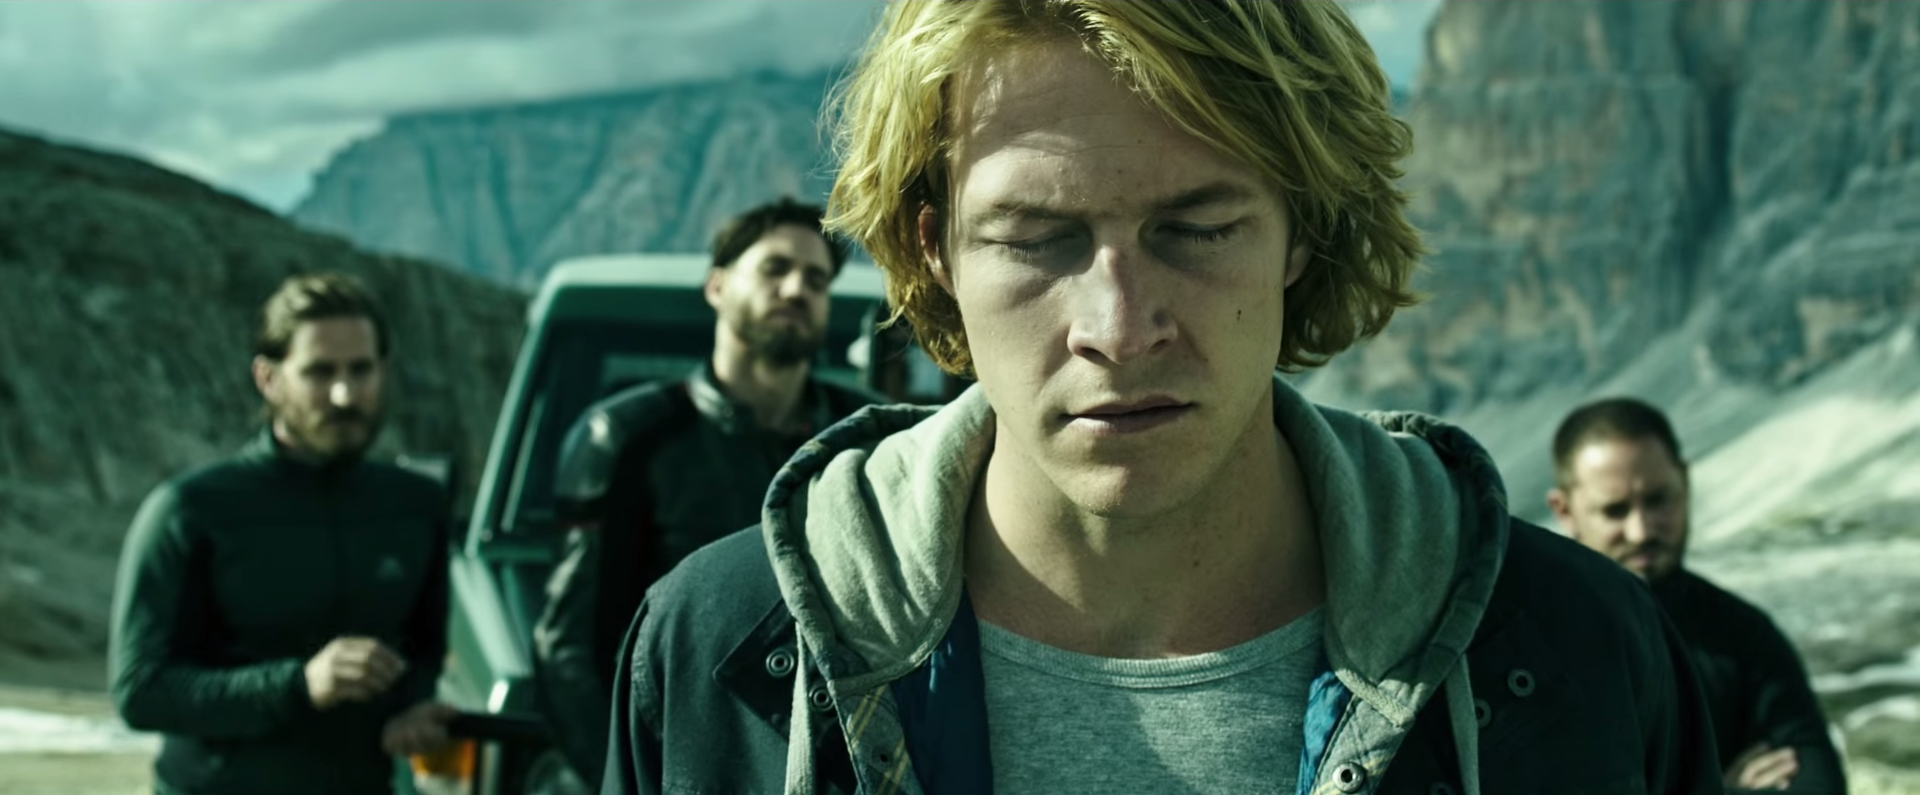 Weekly Roundup: Point Break Remake Might Be Good